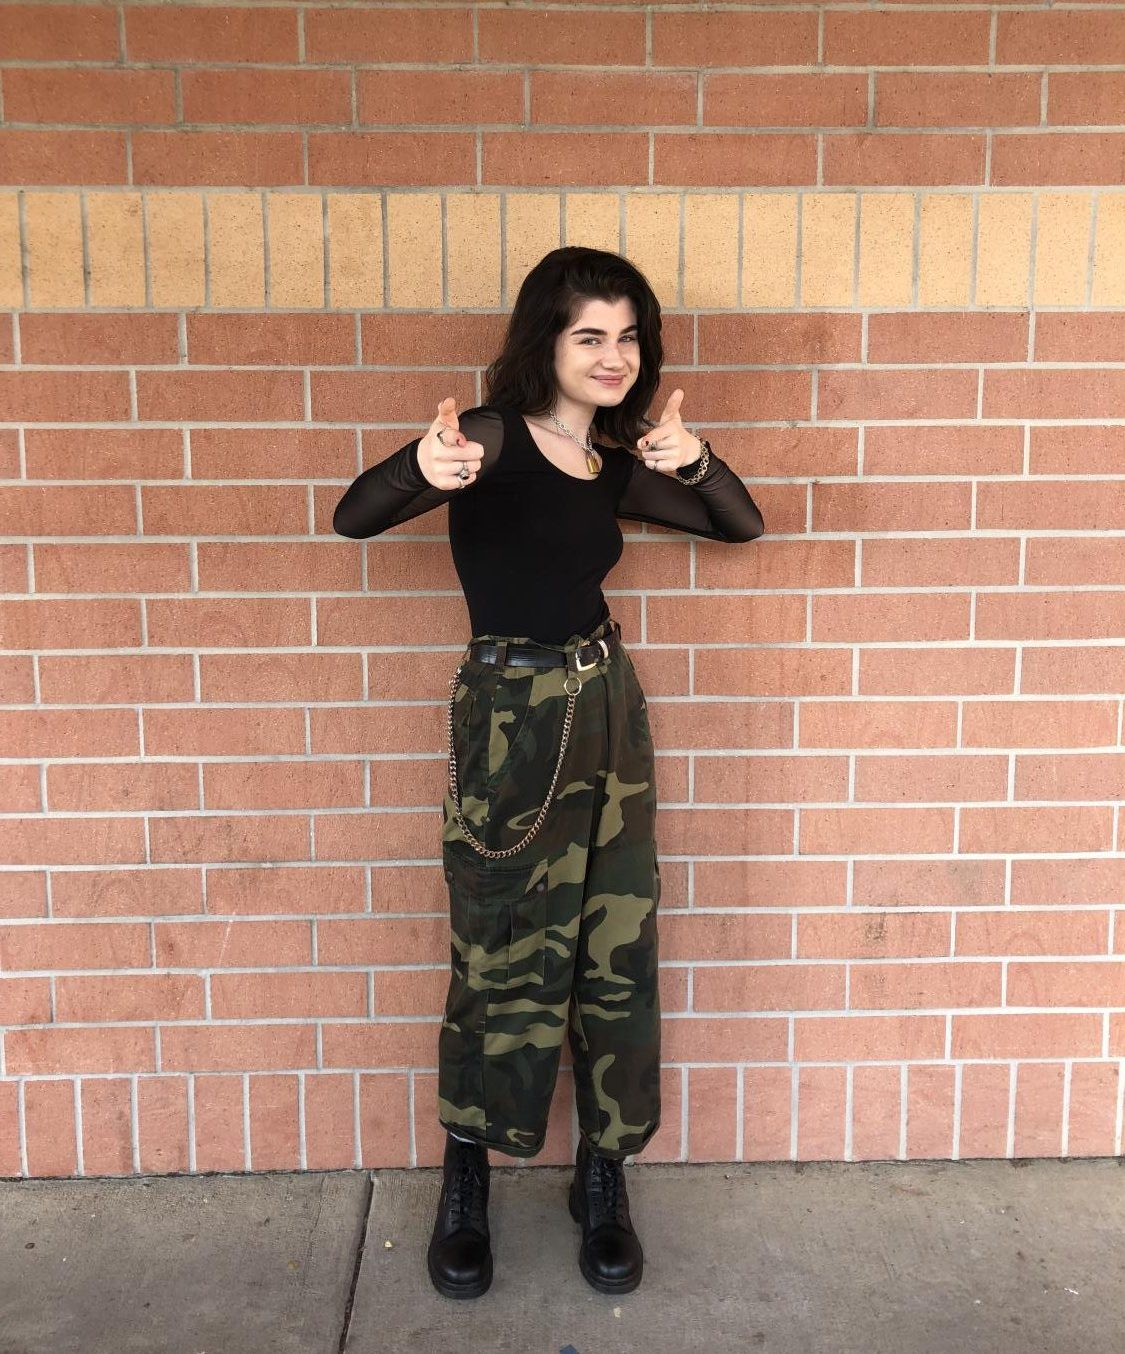 Kenzie Keith poses in an outfit with a green and black color scheme.